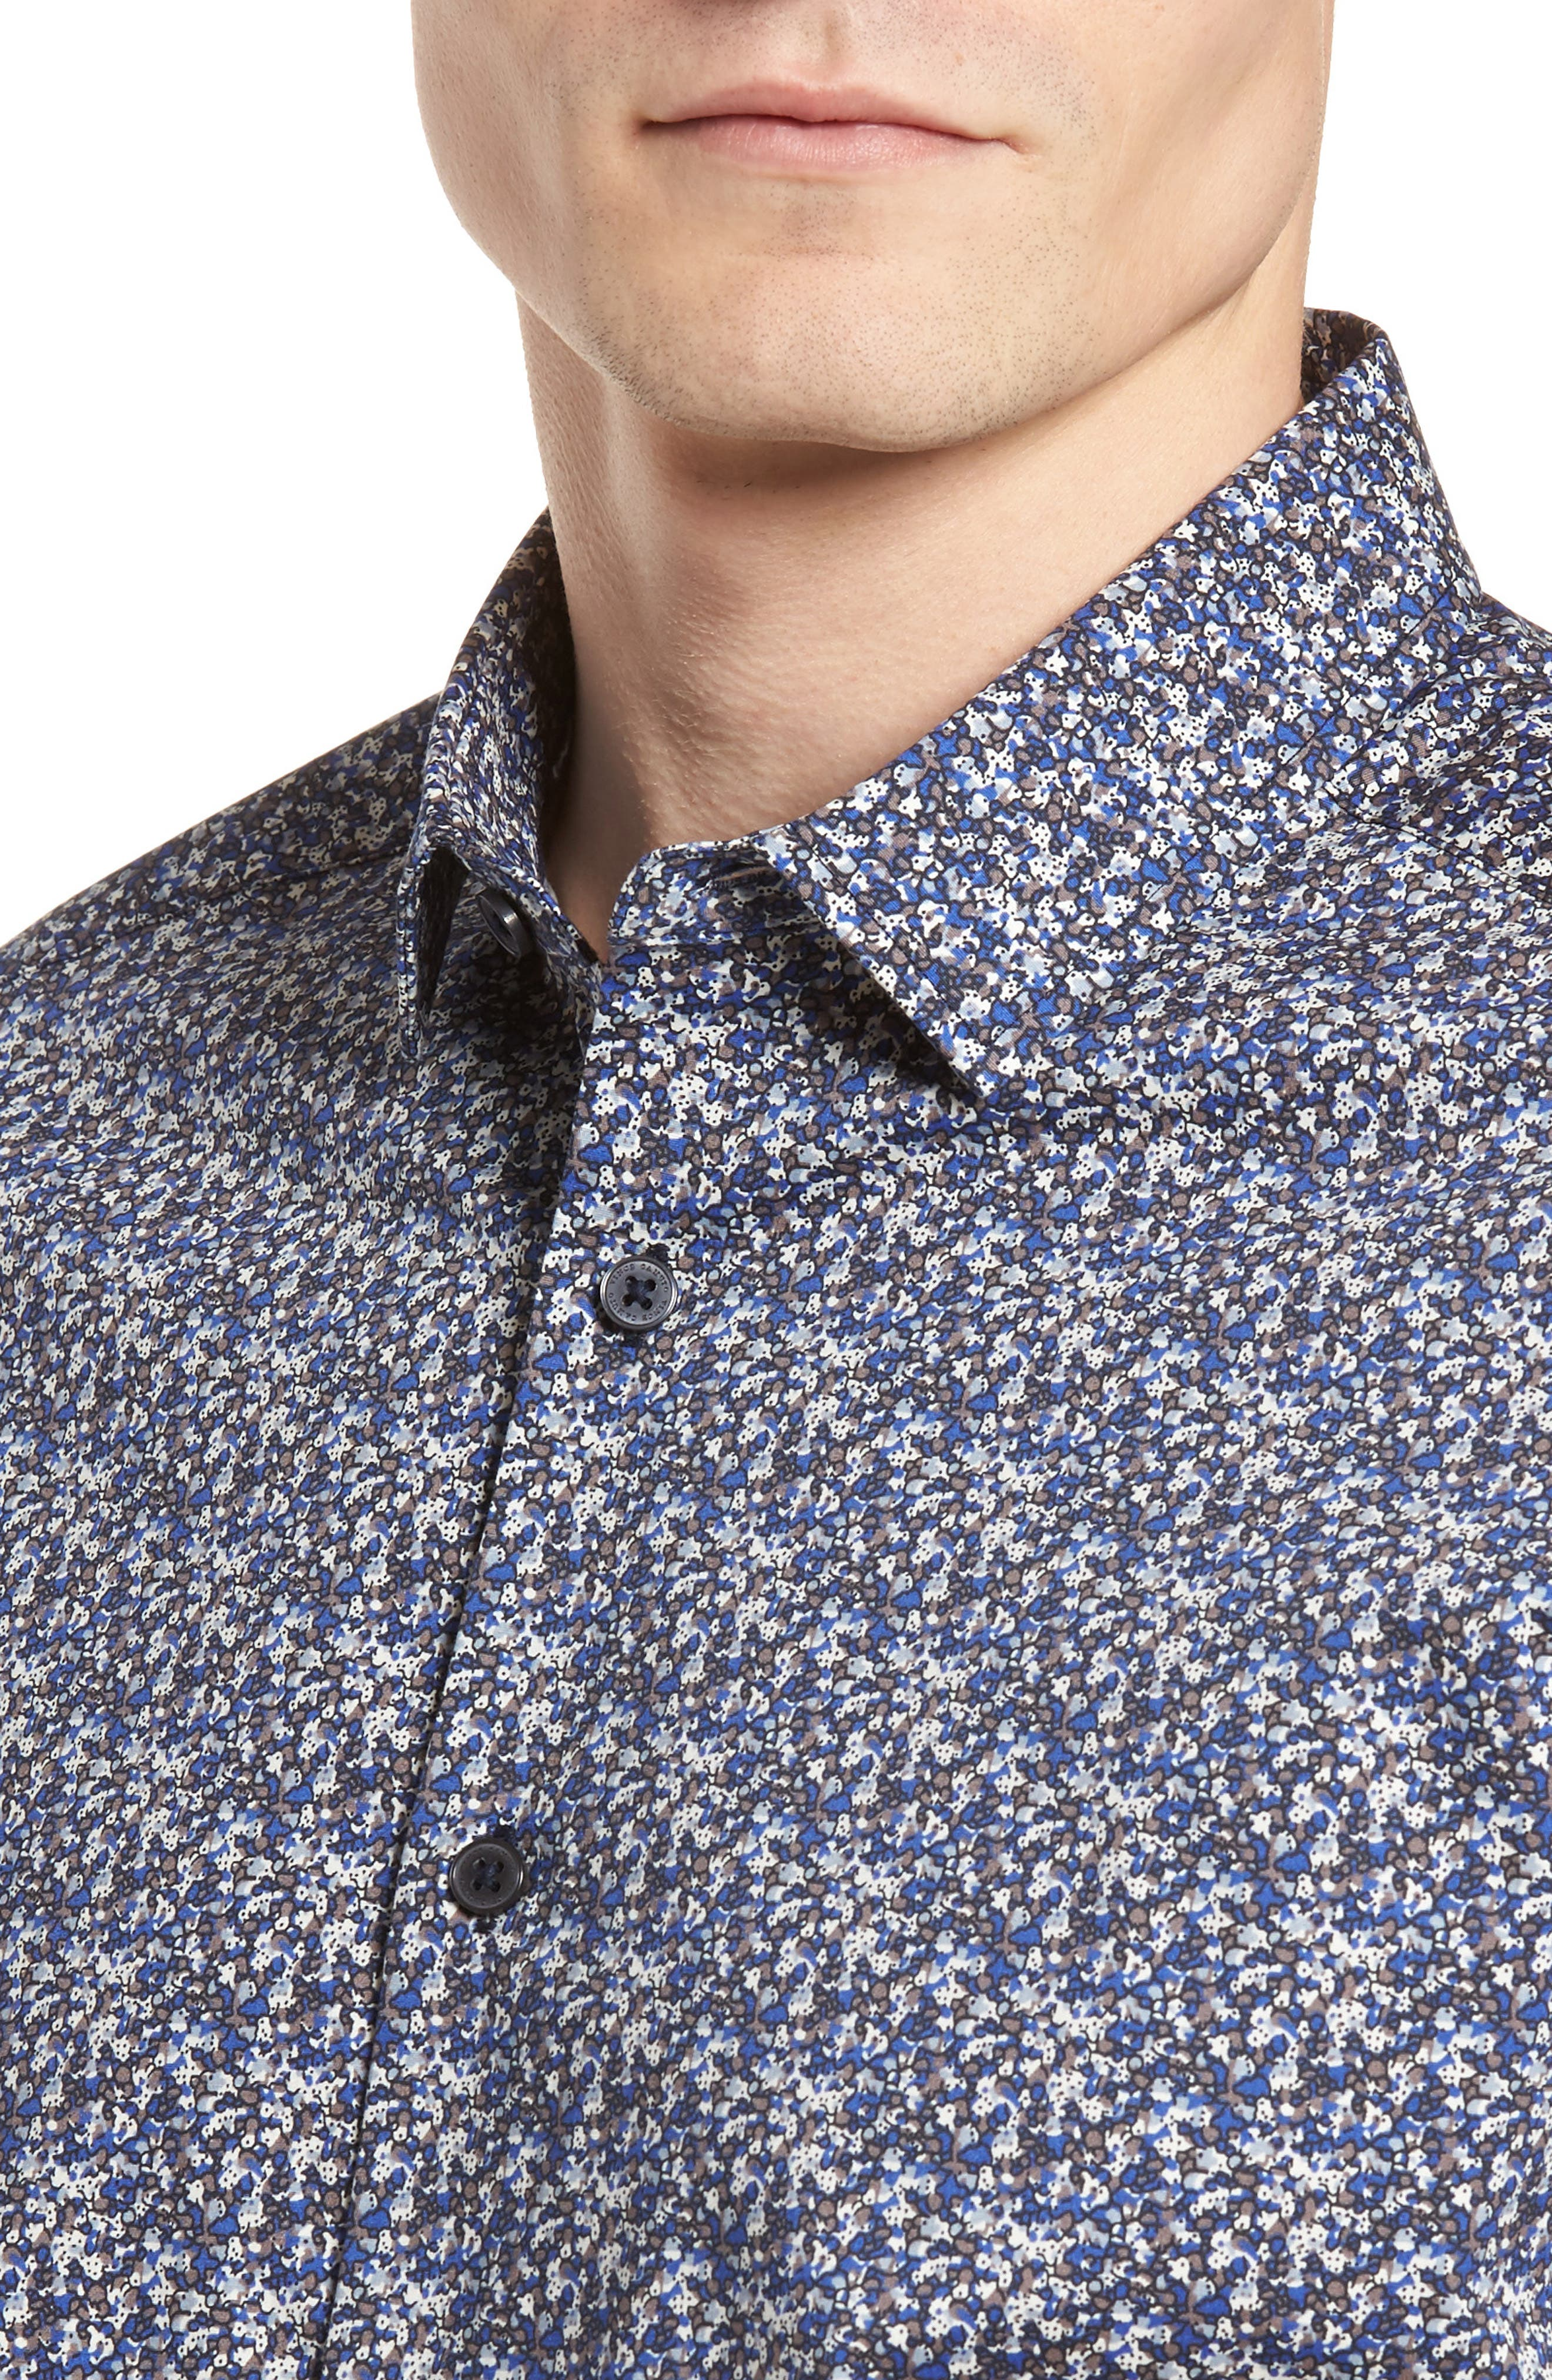 Slim Fit Print Sport Shirt,                             Alternate thumbnail 4, color,                             Blue Abstract Floral